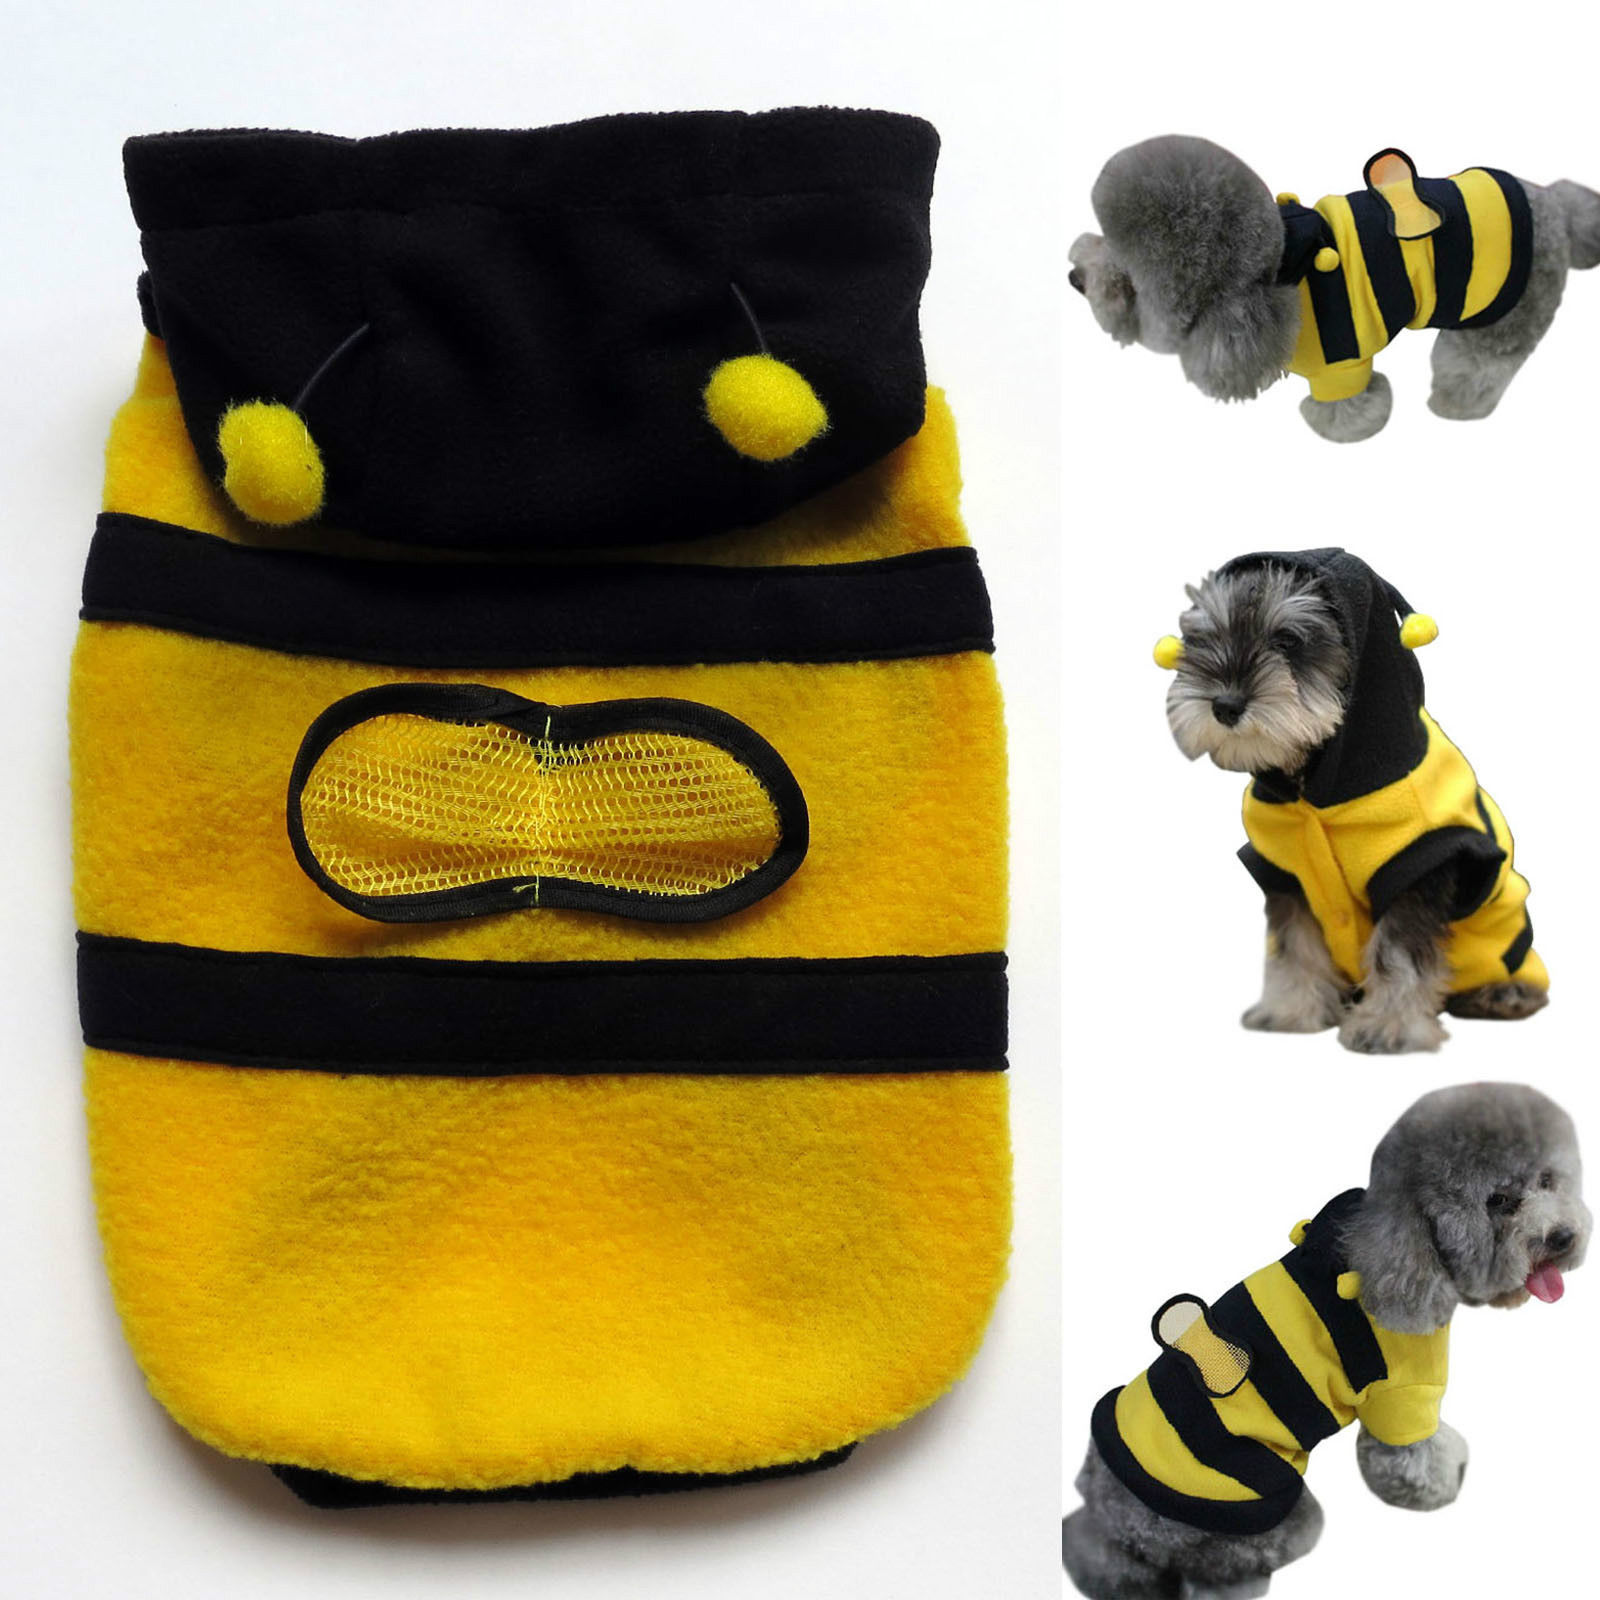 2f321cedc3b8 New Lovely Dogs Pets Clothing And Clothes Cute Fleece Bumble Bee ...